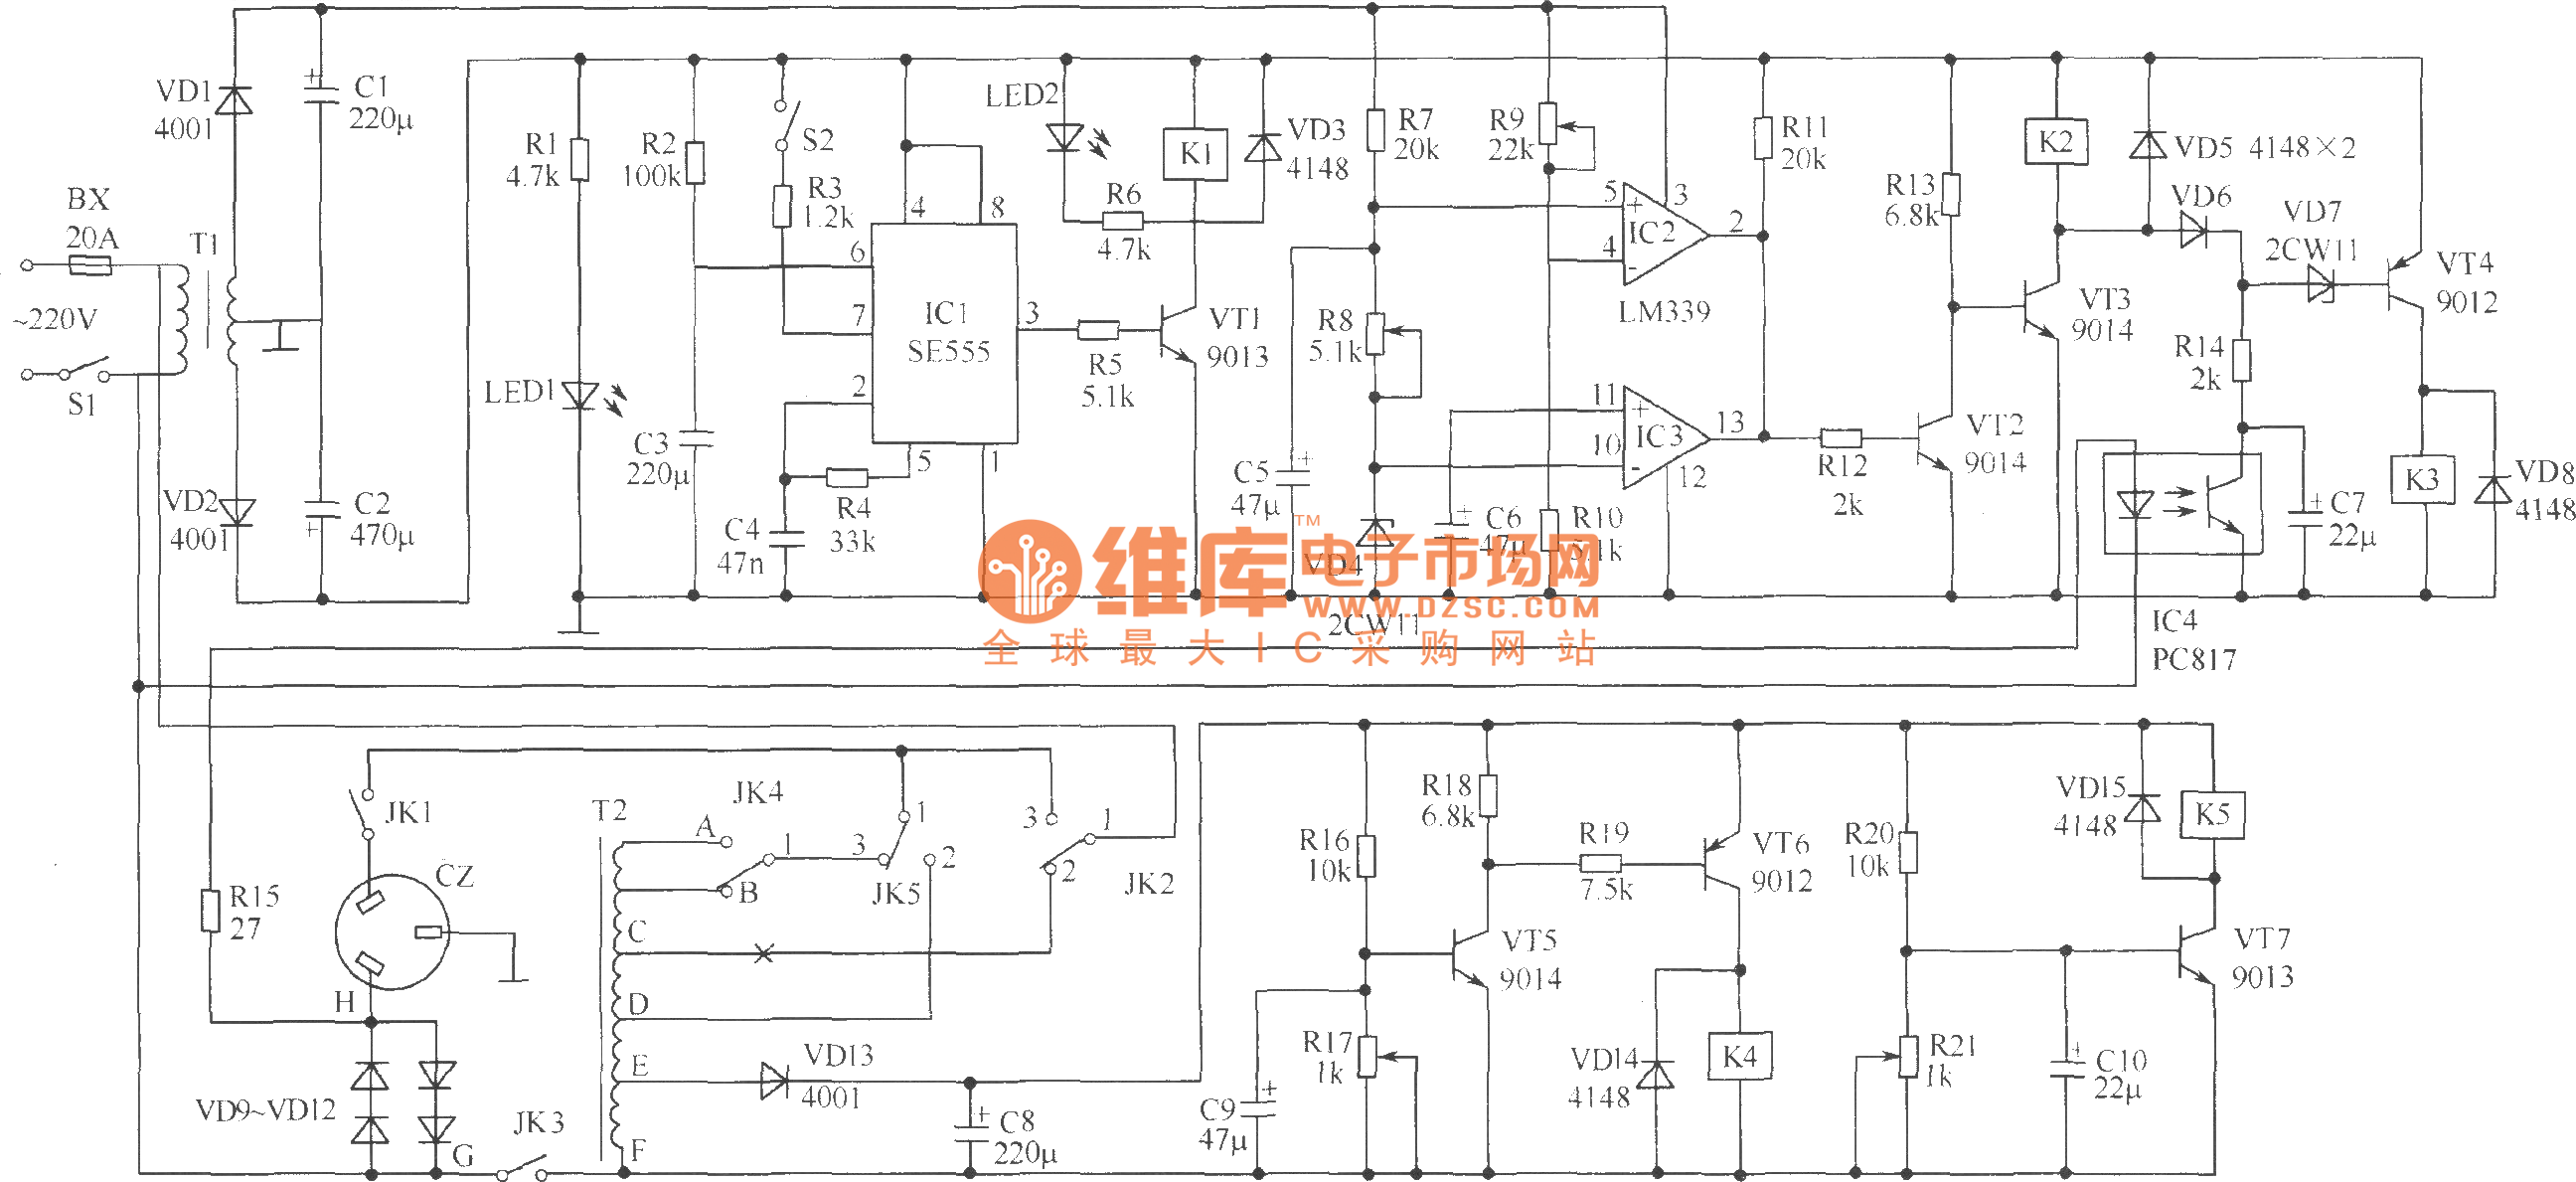 2500w Amplifier Circuit Diagram Wiring Diagrams Fet Driver Basiccircuit Seekic Power Saving Voltage Regulator Basic Audio